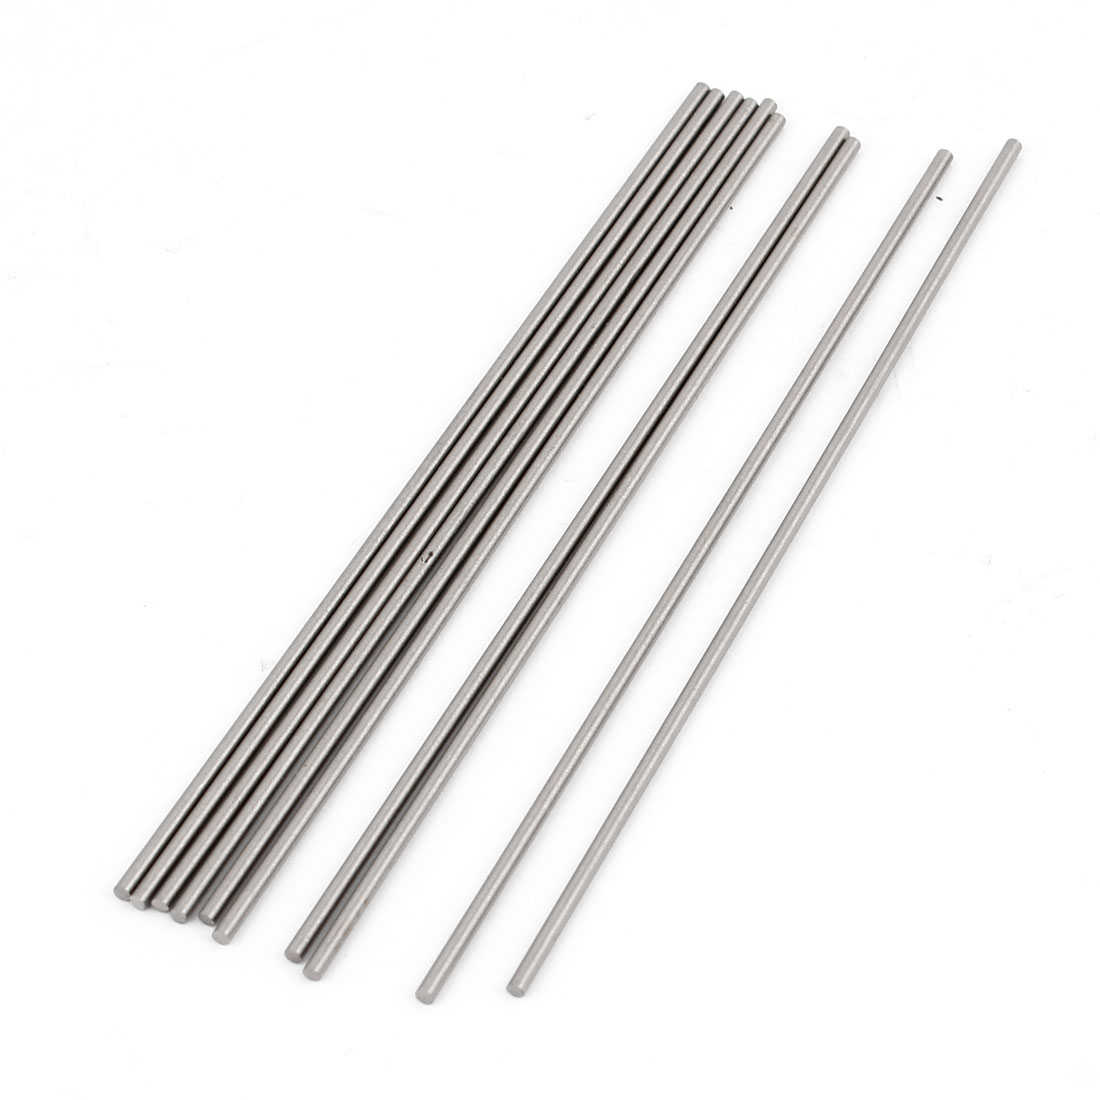 Unique Bargains 0.06' x 4' Graving Tool Round Turning Lathe Bars 10 Pcs